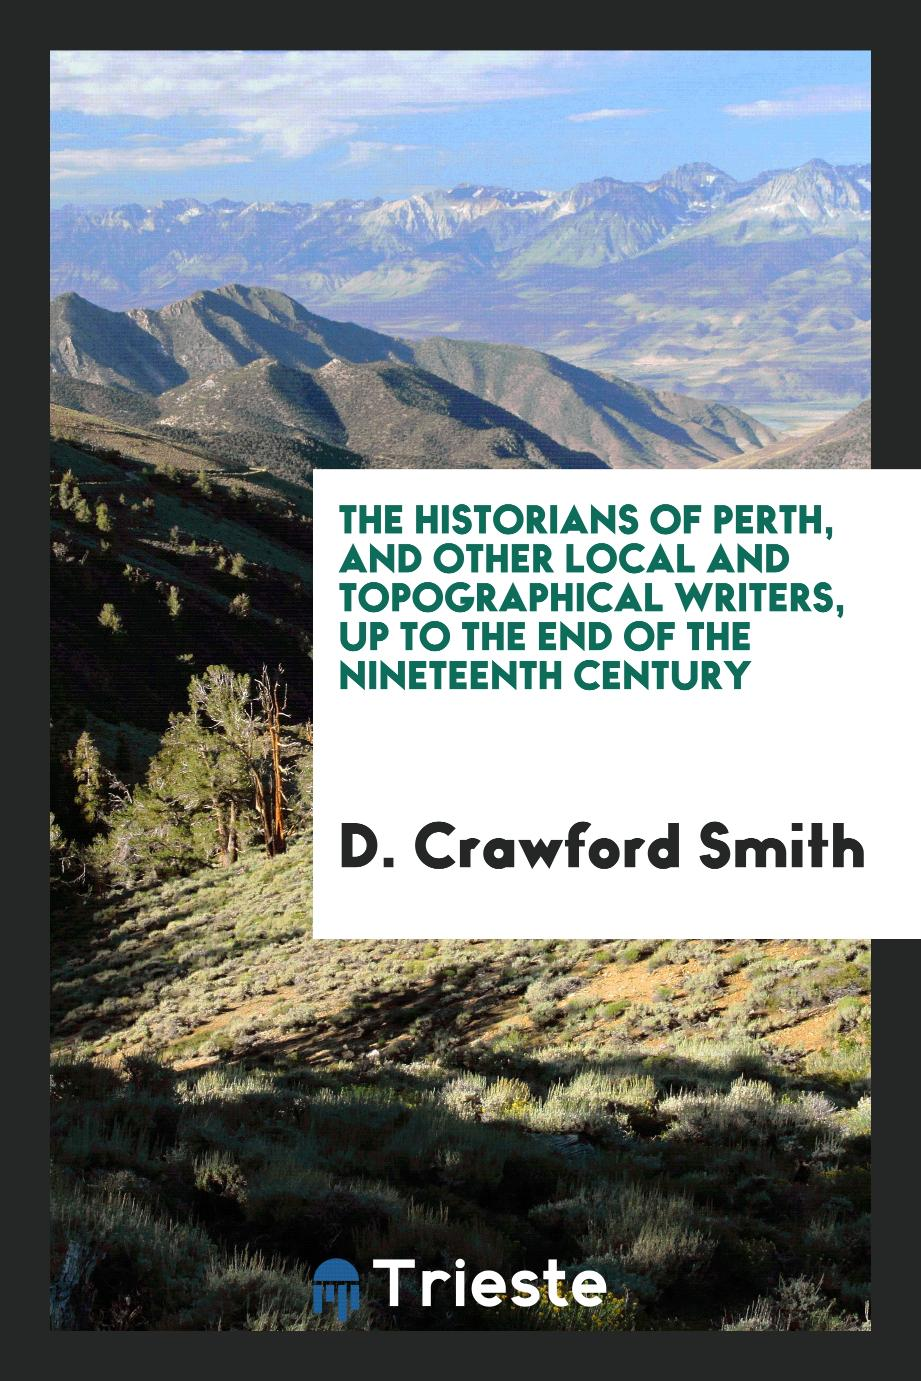 The Historians of Perth, and Other Local and Topographical Writers, up to the End of the Nineteenth Century